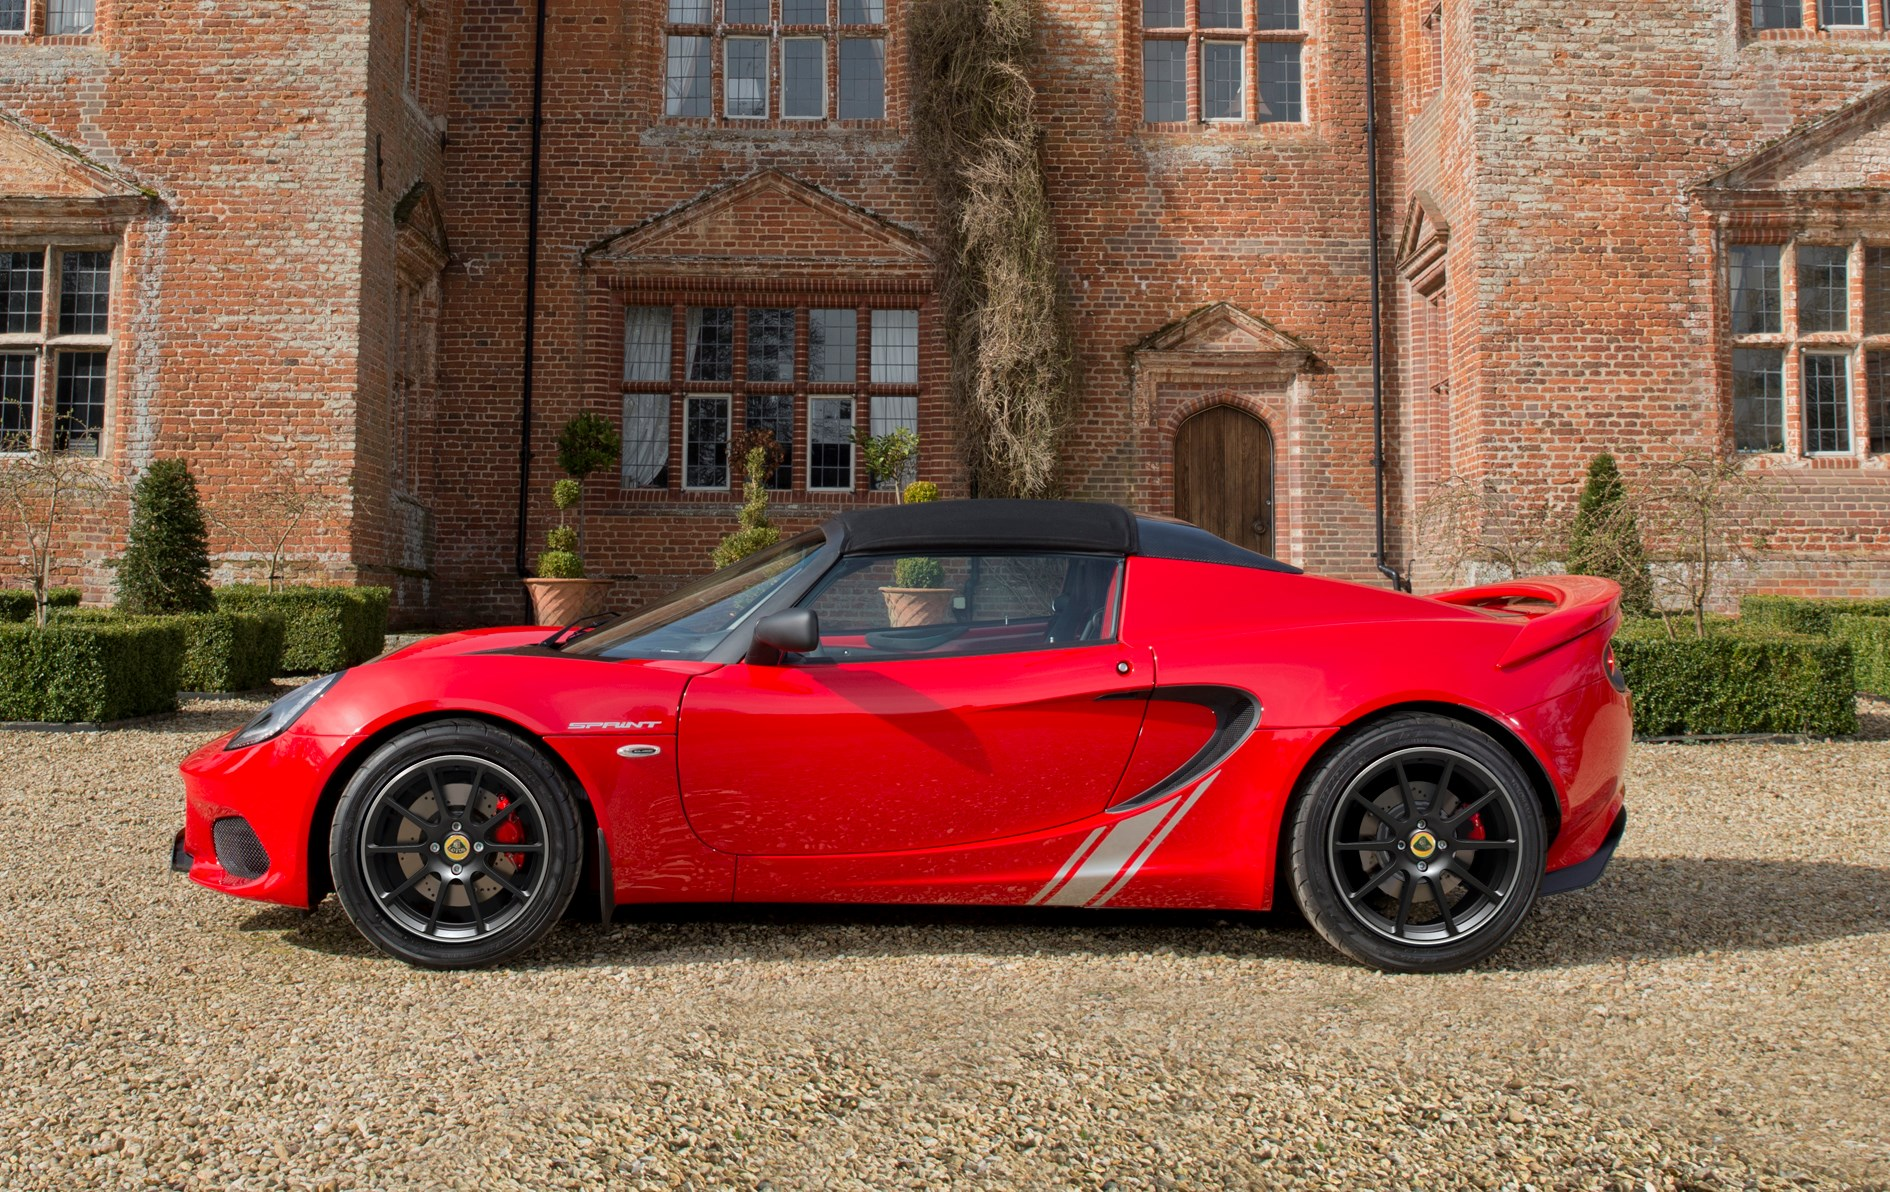 New Lotus Elise Sprint is one of the lightest sports cars ever